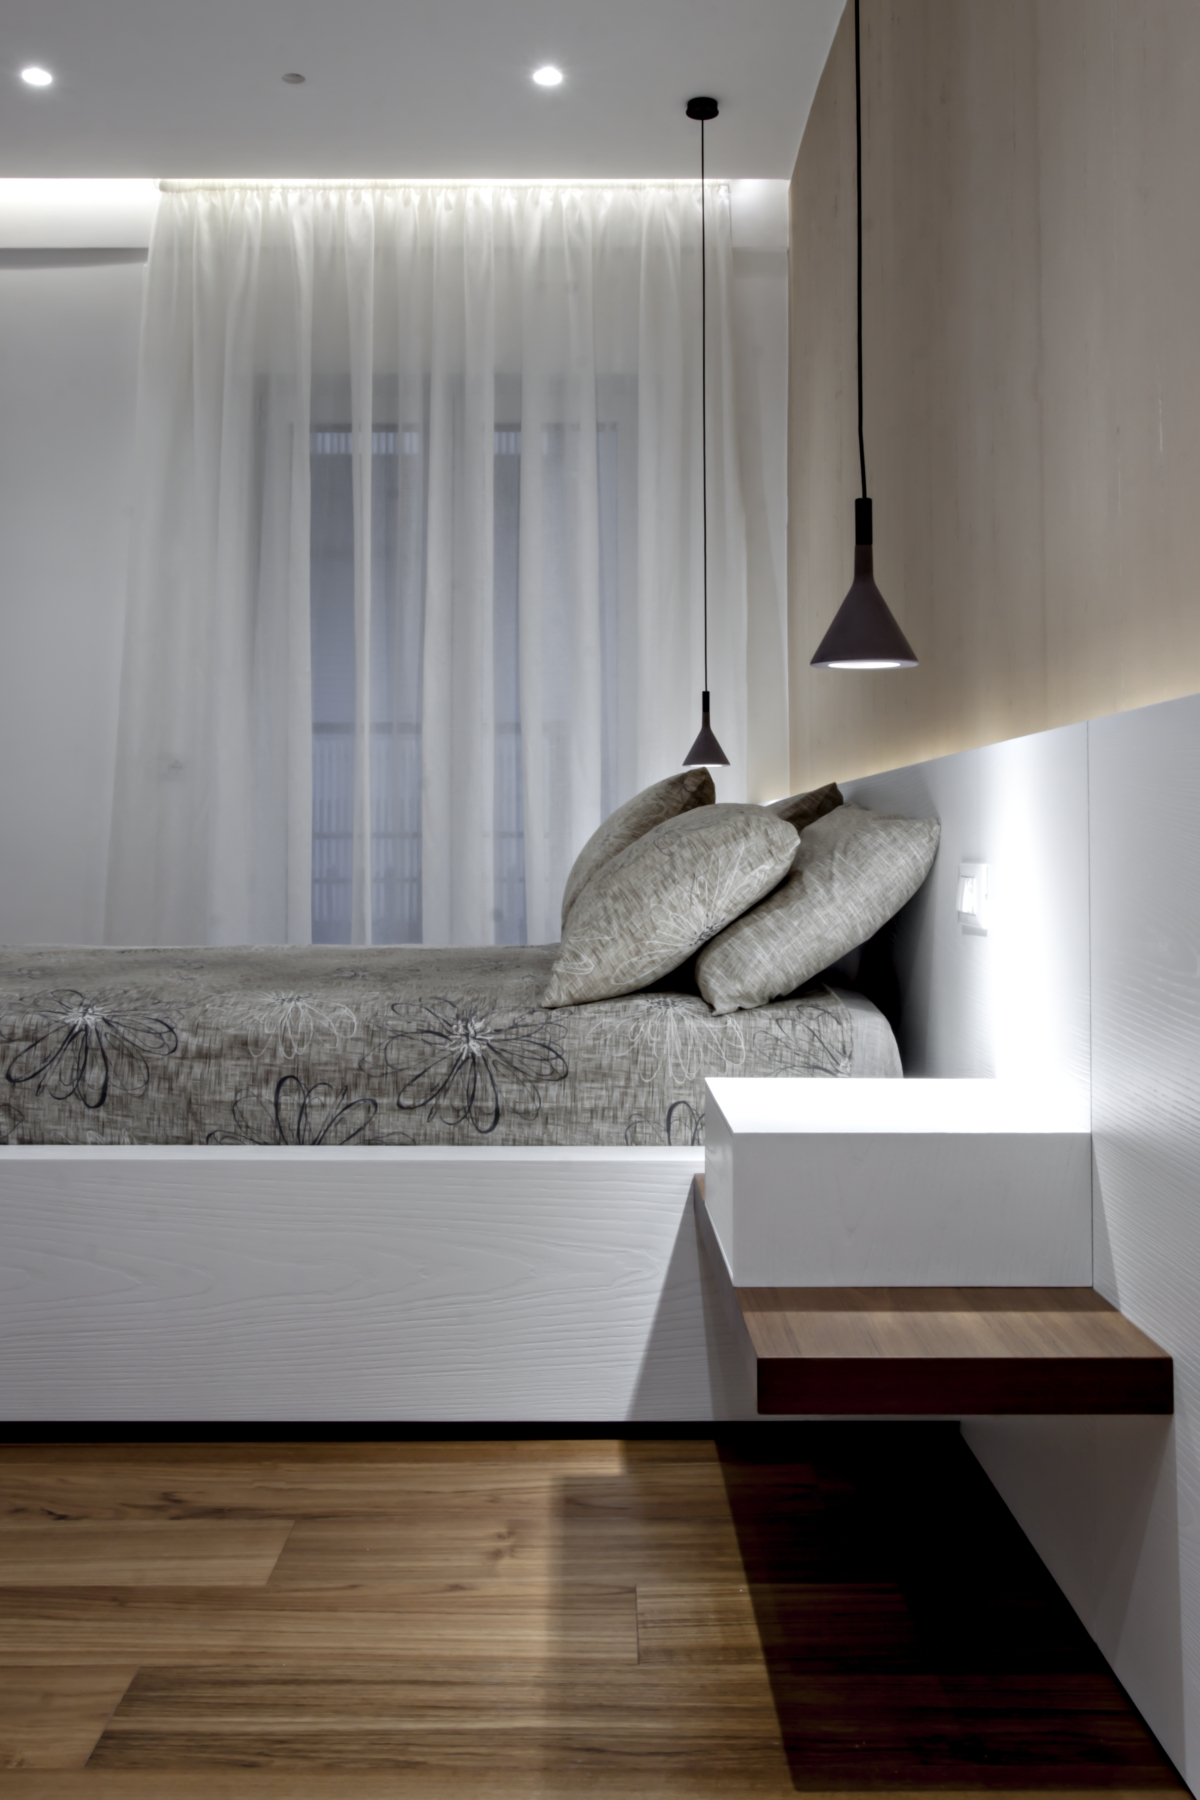 In the sleeping area, every element, from the backlit paneling that serves as a headboard to the bed structure up to the cabinets, was specially designed by Michelangelo Olivieri and made of brushed and lacquered oak open pore.